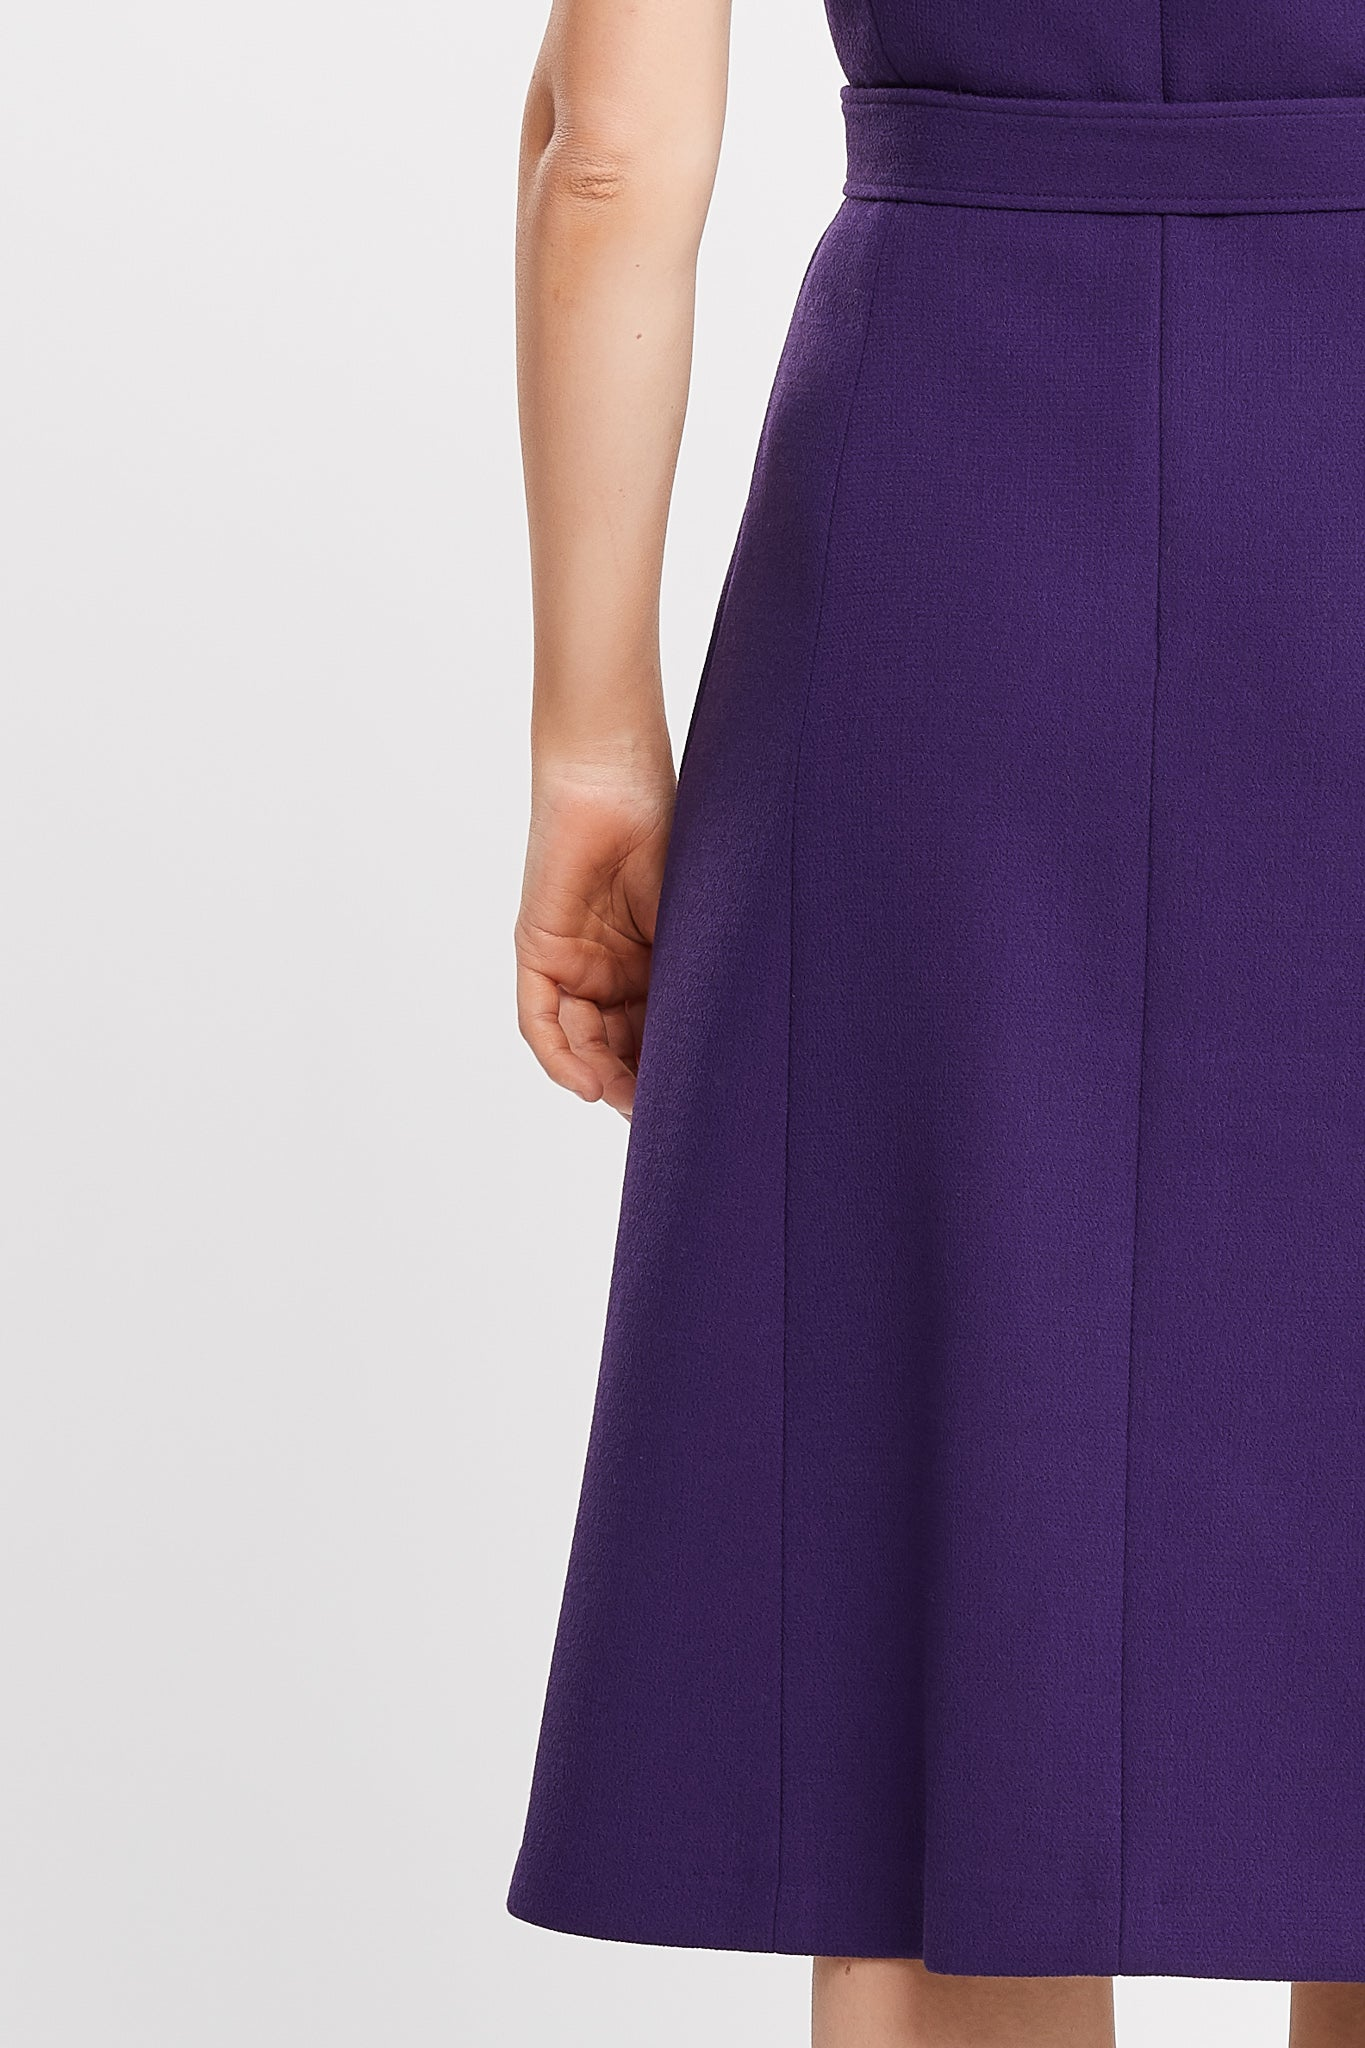 Rita Short Sleeve A-line Purple Work and Cocktail Dress